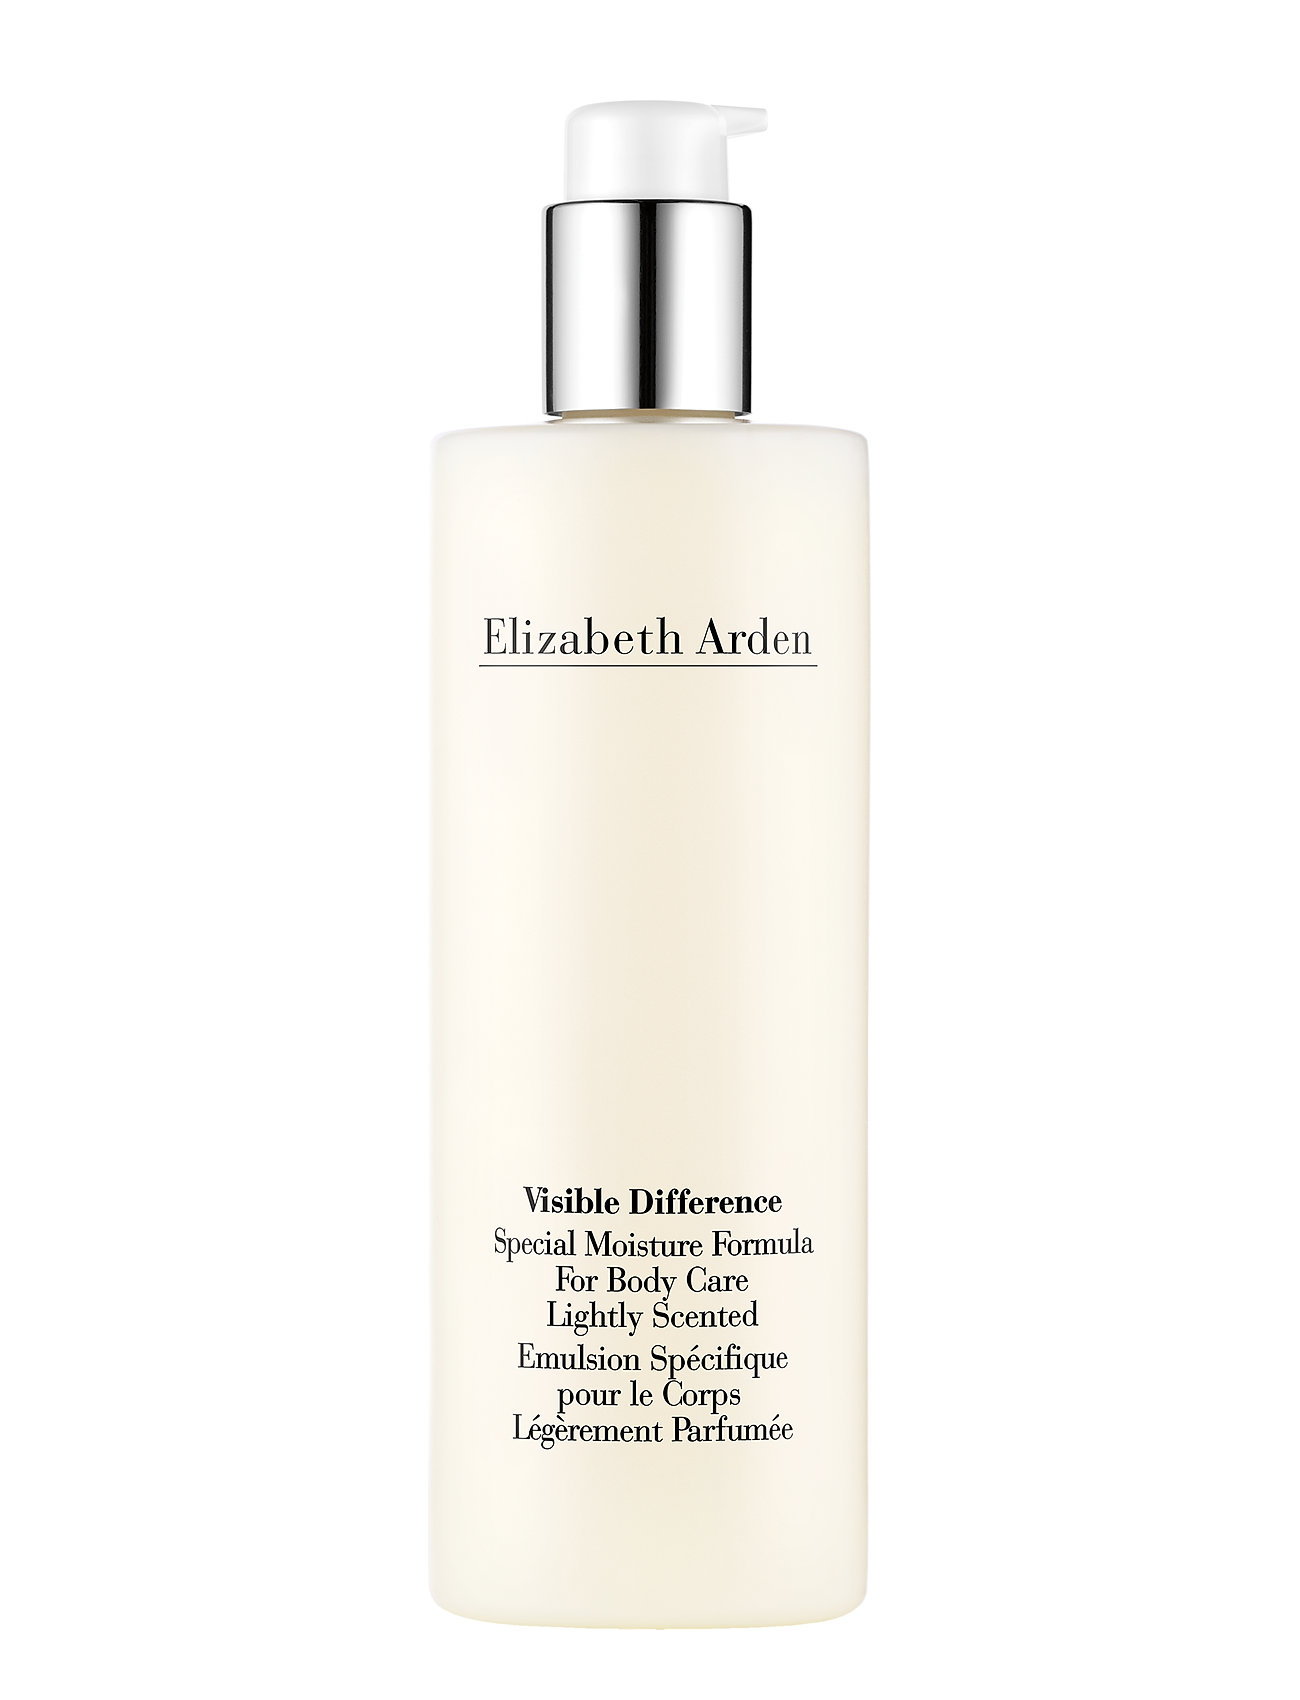 Image of Visible Differencebody Lotion Beauty WOMEN Skin Care Body Body Lotion Elizabeth Arden (3322900115)